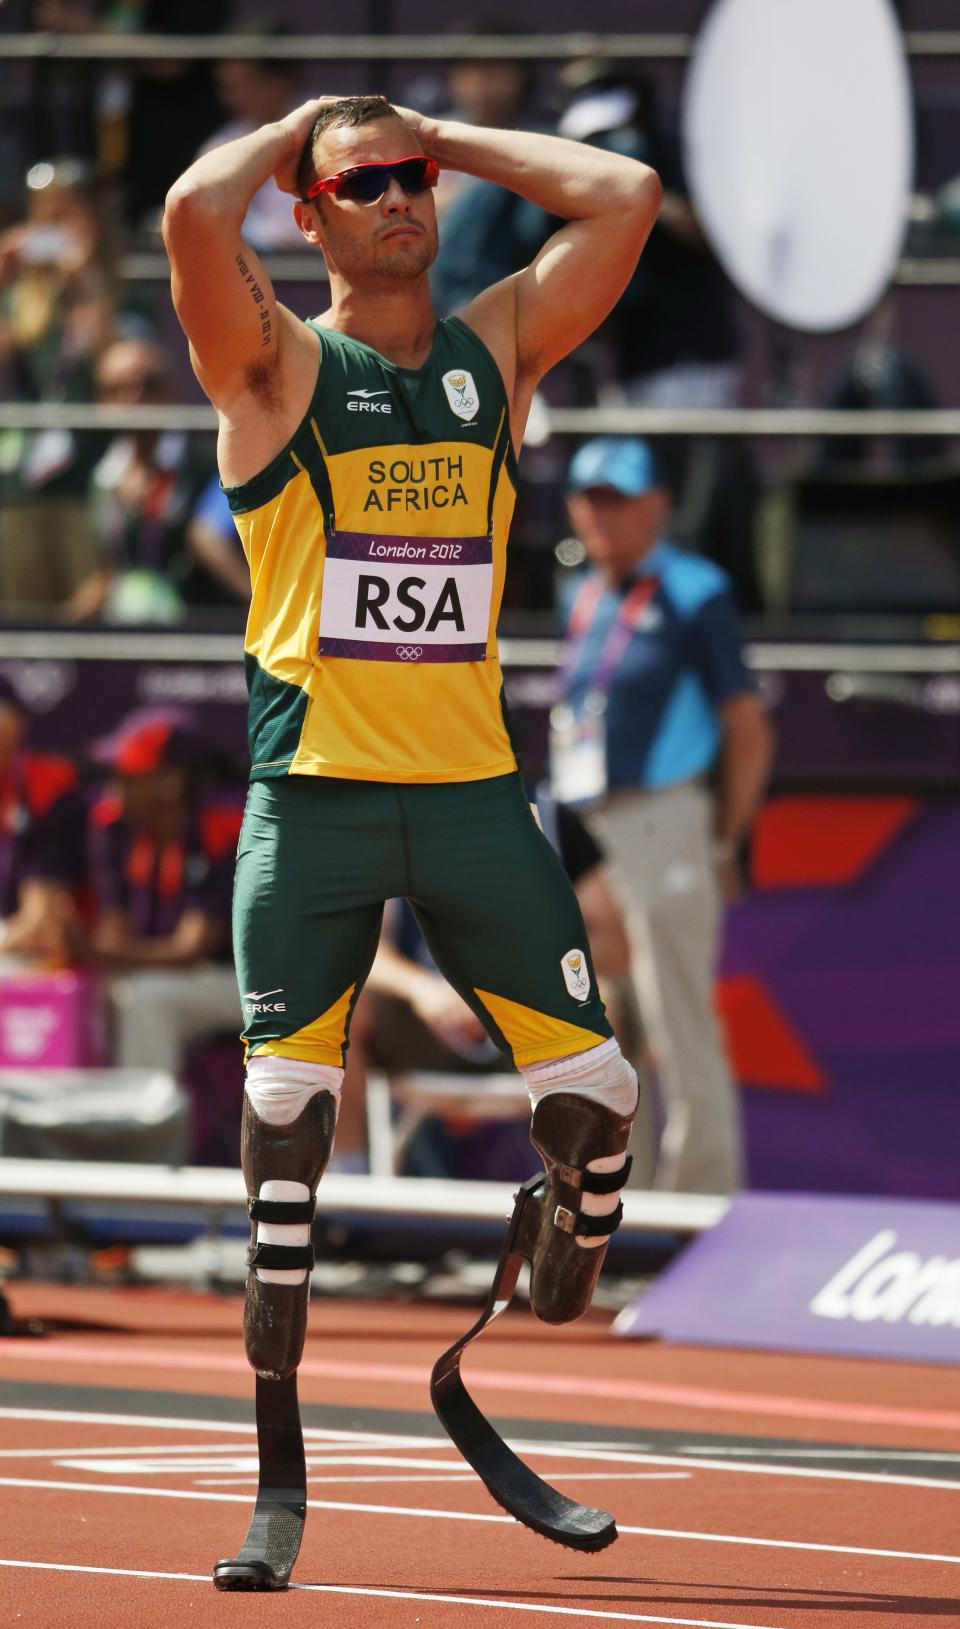 South Africa's Oscar Pistorius reacts after fellow team members crashed out of a men's 4x400-meter relay heat during the athletics in the Olympic Stadium at the 2012 Summer Olympics, London, Thursday, Aug. 9, 2012. (AP Photo/Matt Dunham)